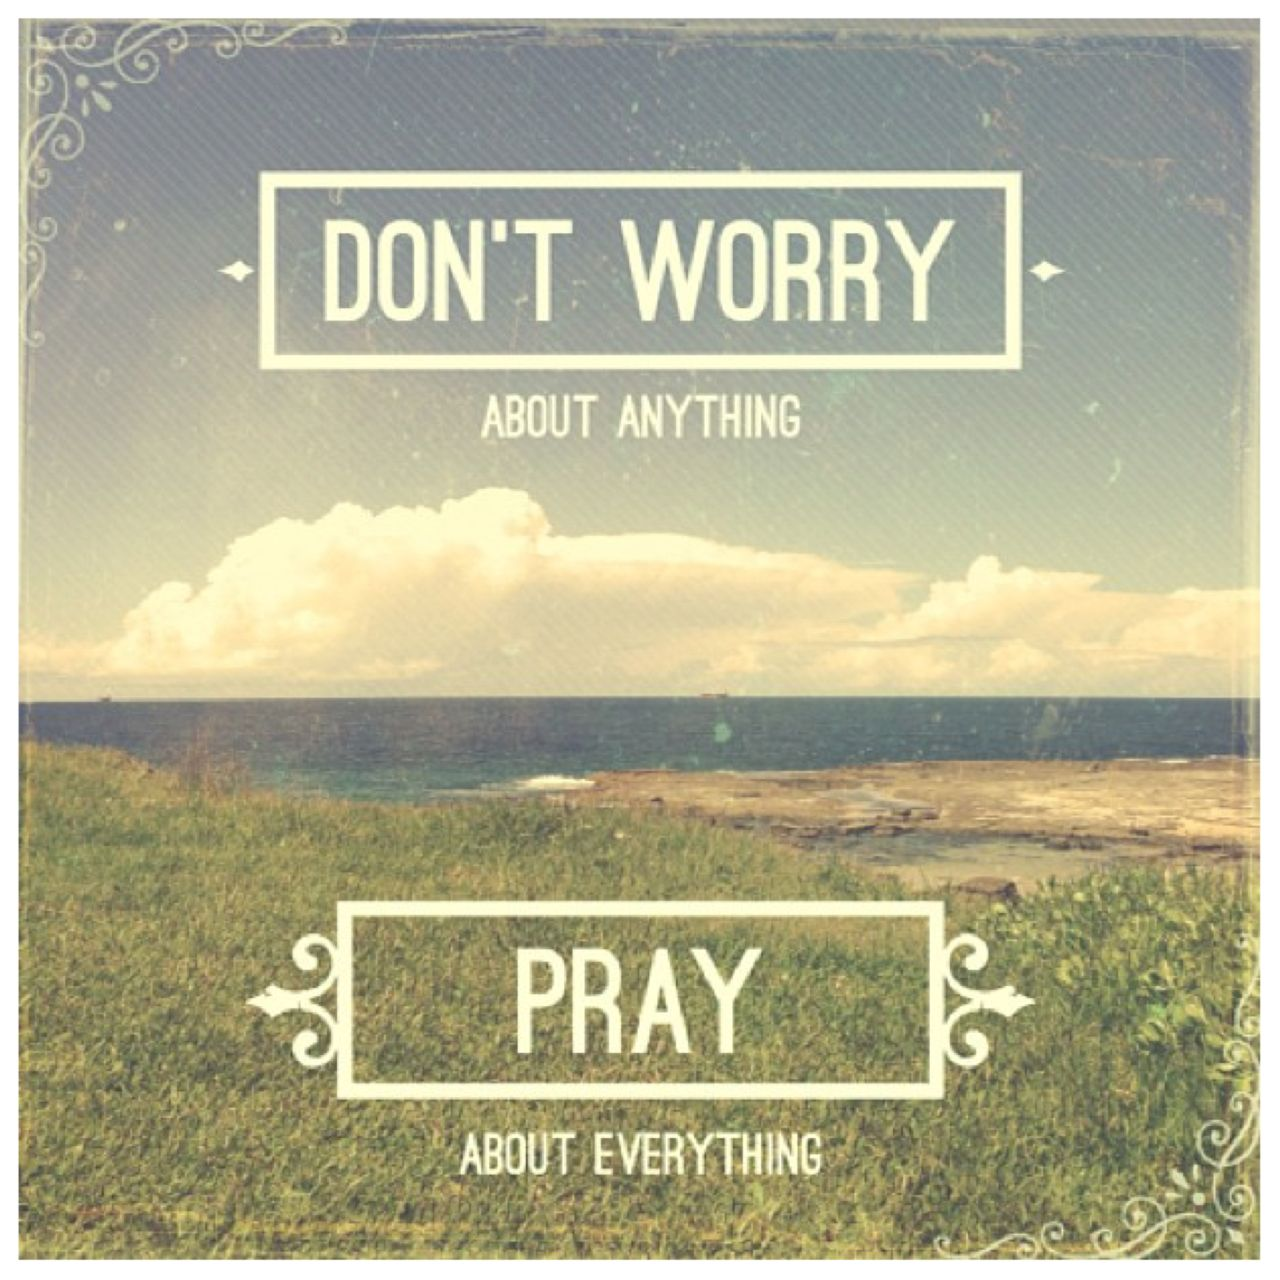 Philippians 4:6 --- Don't worry about anything, pray about everything. <3